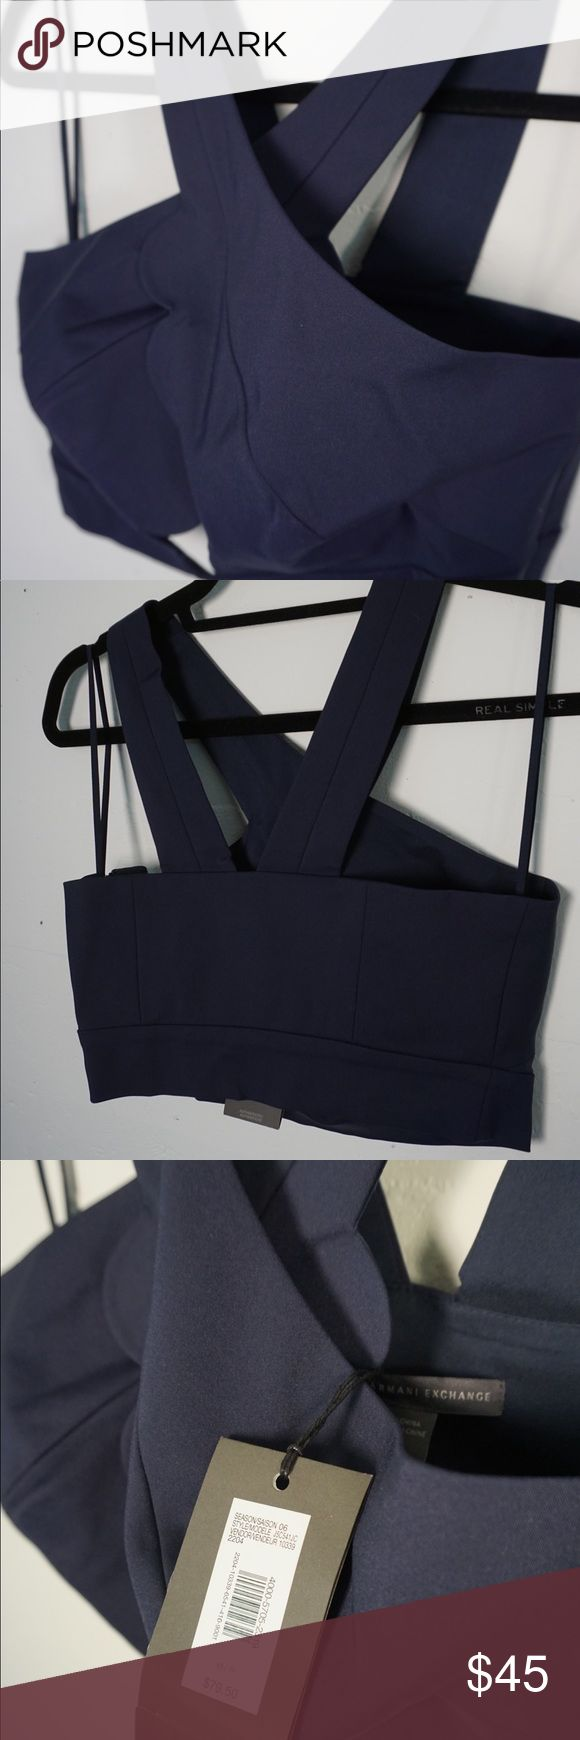 Armani Exchange Crop Top Cross cross neck in a beautiful navy color.. Perfect with a pair of high waisted slacks for a chic head to toe look. Side zipper. Armani Exchange Tops Crop Tops